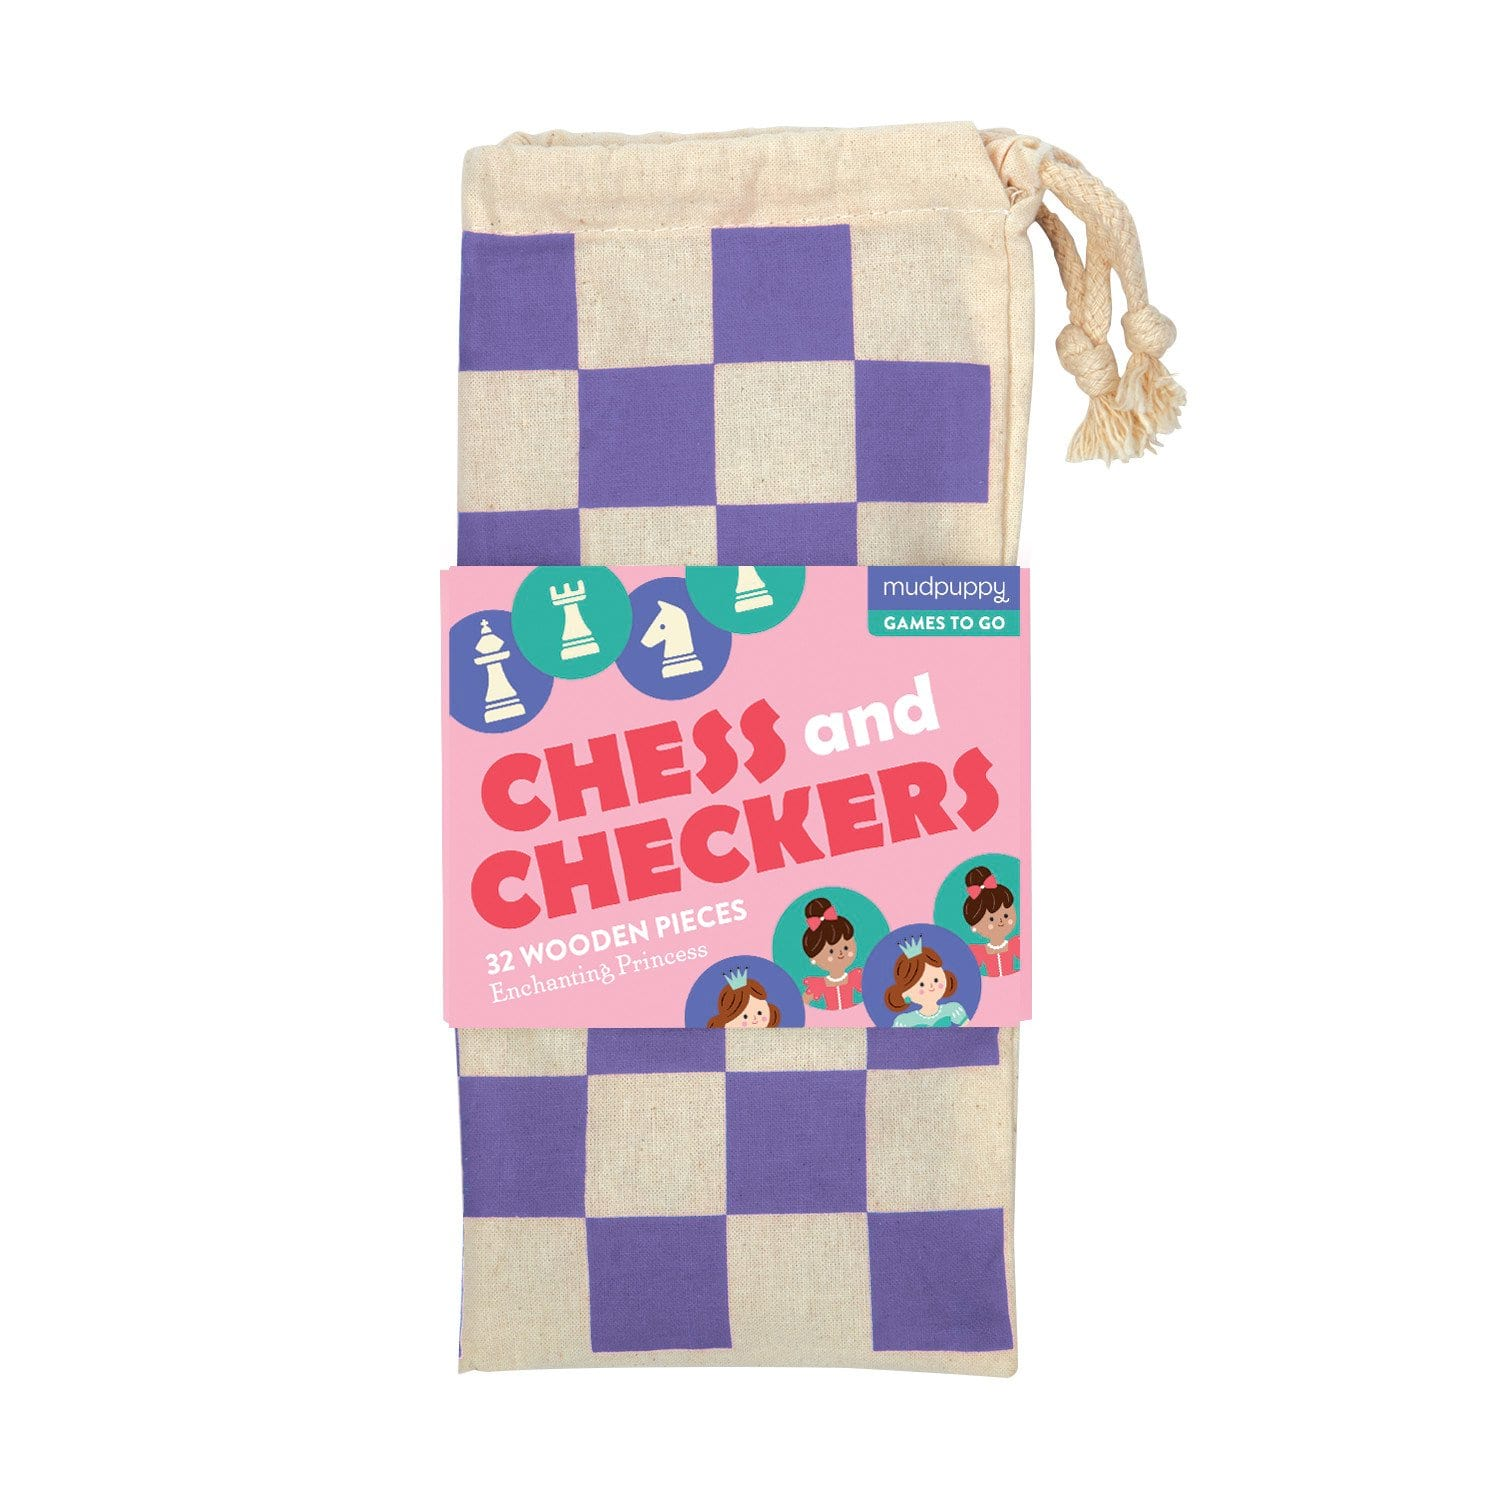 Mudpuppy - Enchanting Princess Chess & Checkers